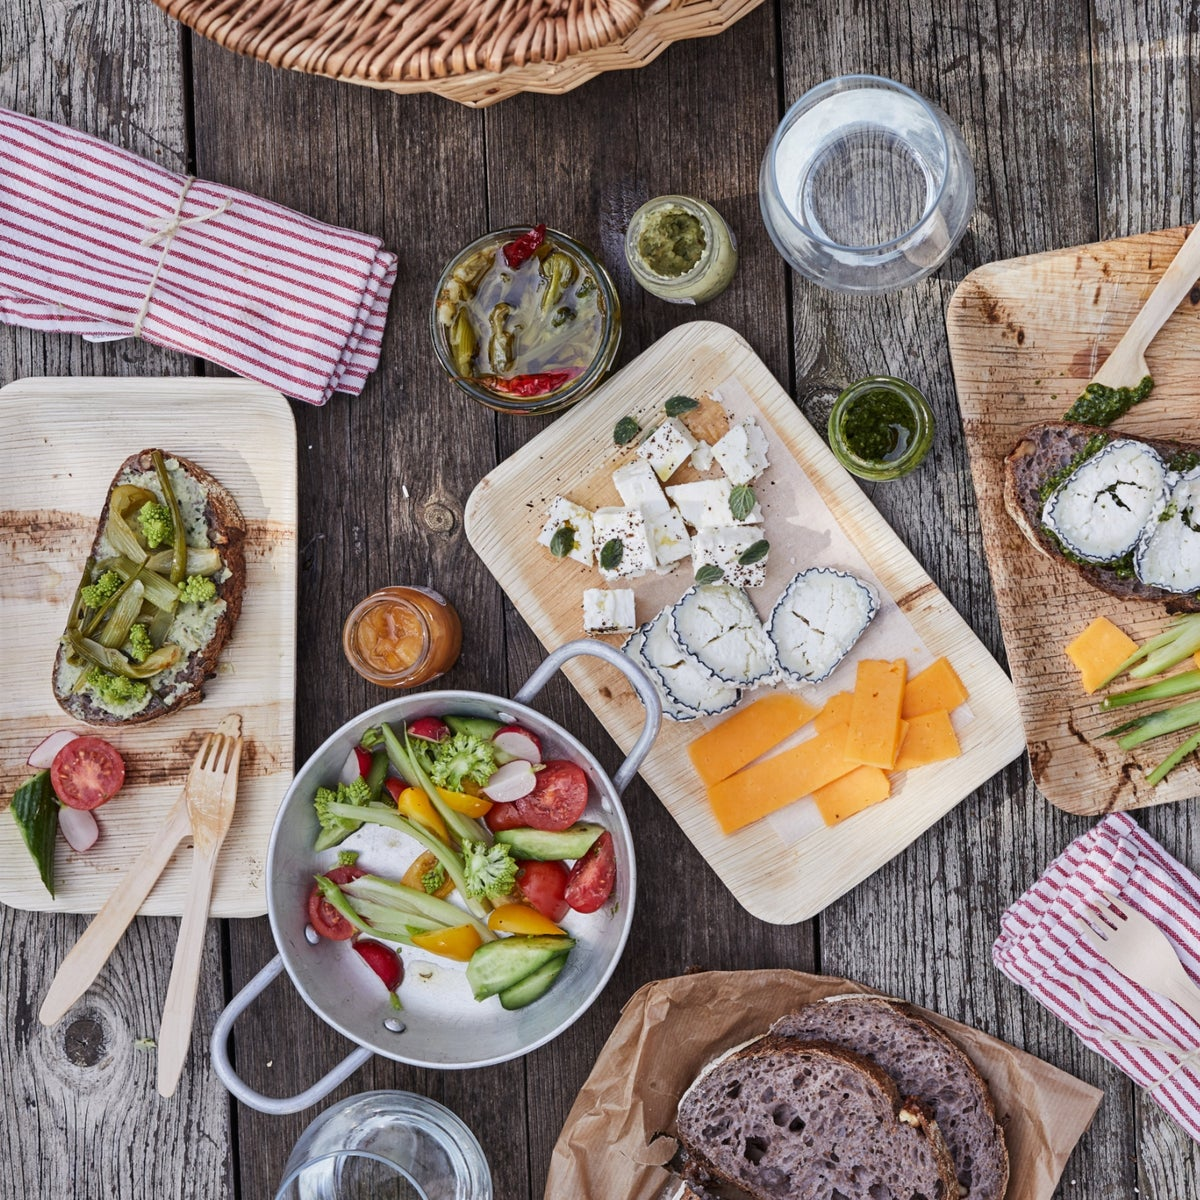 A picnic lunch from Farma Cultura. Can be enjoyed on the grounds of the farm, or taken to your favorite picnic spot.